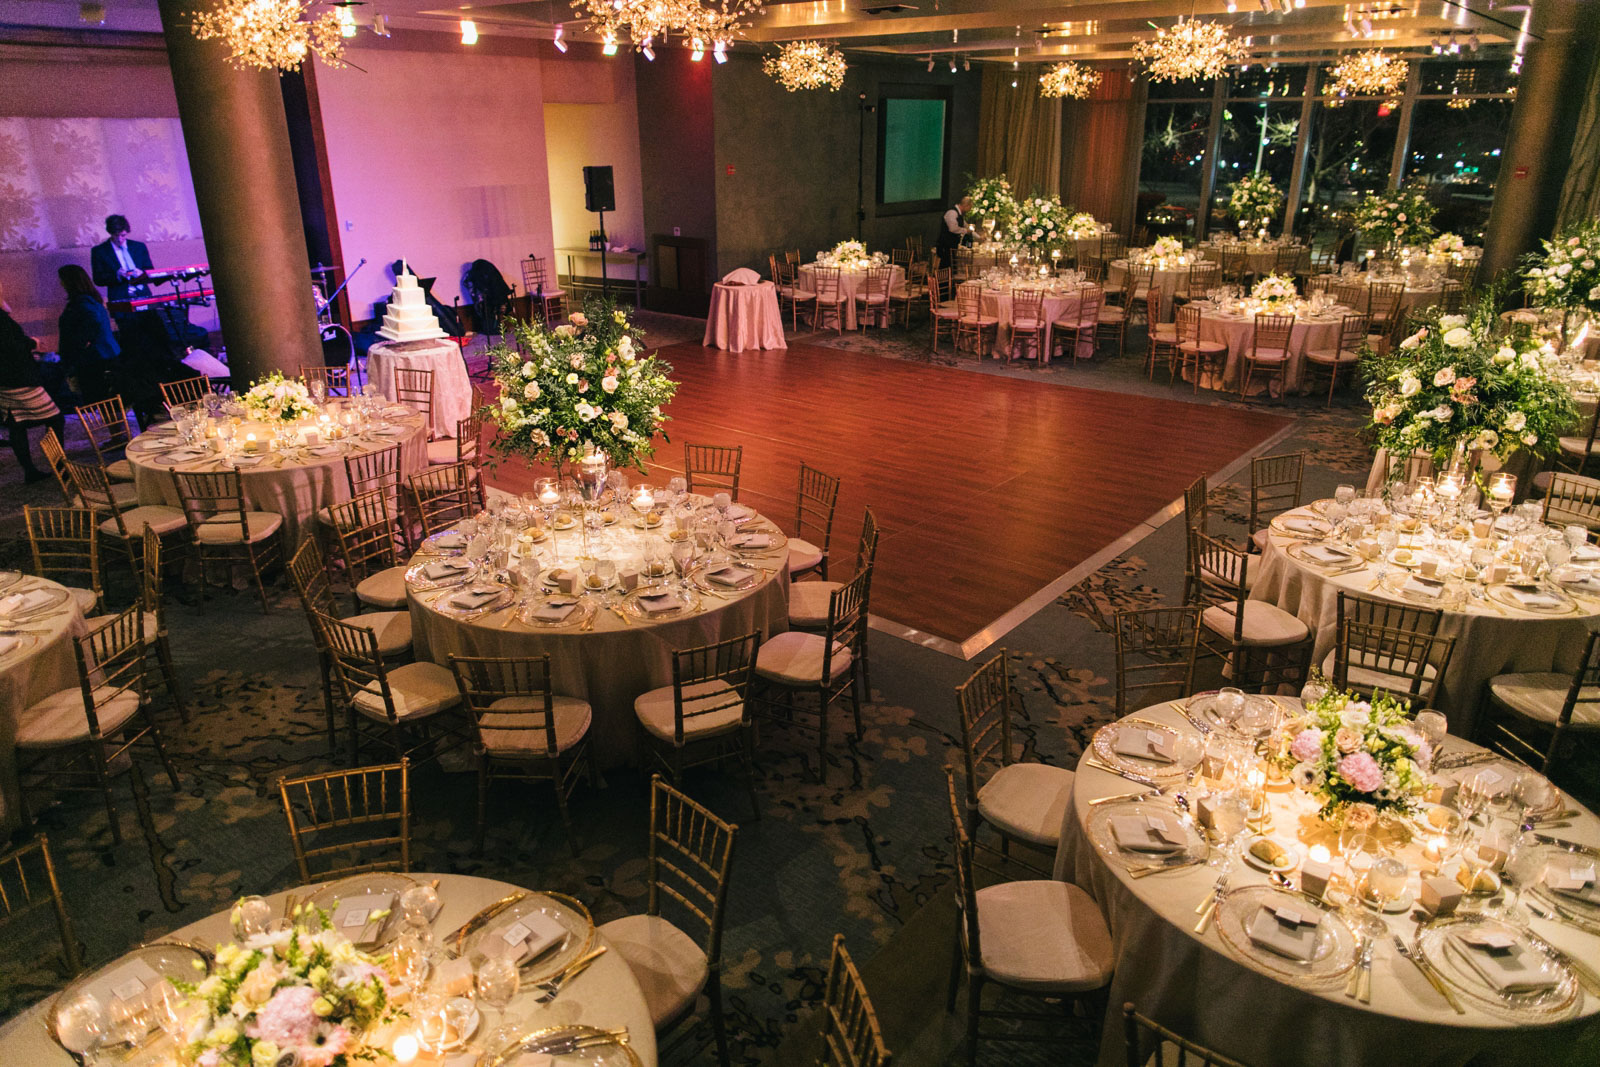 Room shot of romantic wedding reception ballroom at Ritz-Carlton with modern crystal chandeliers